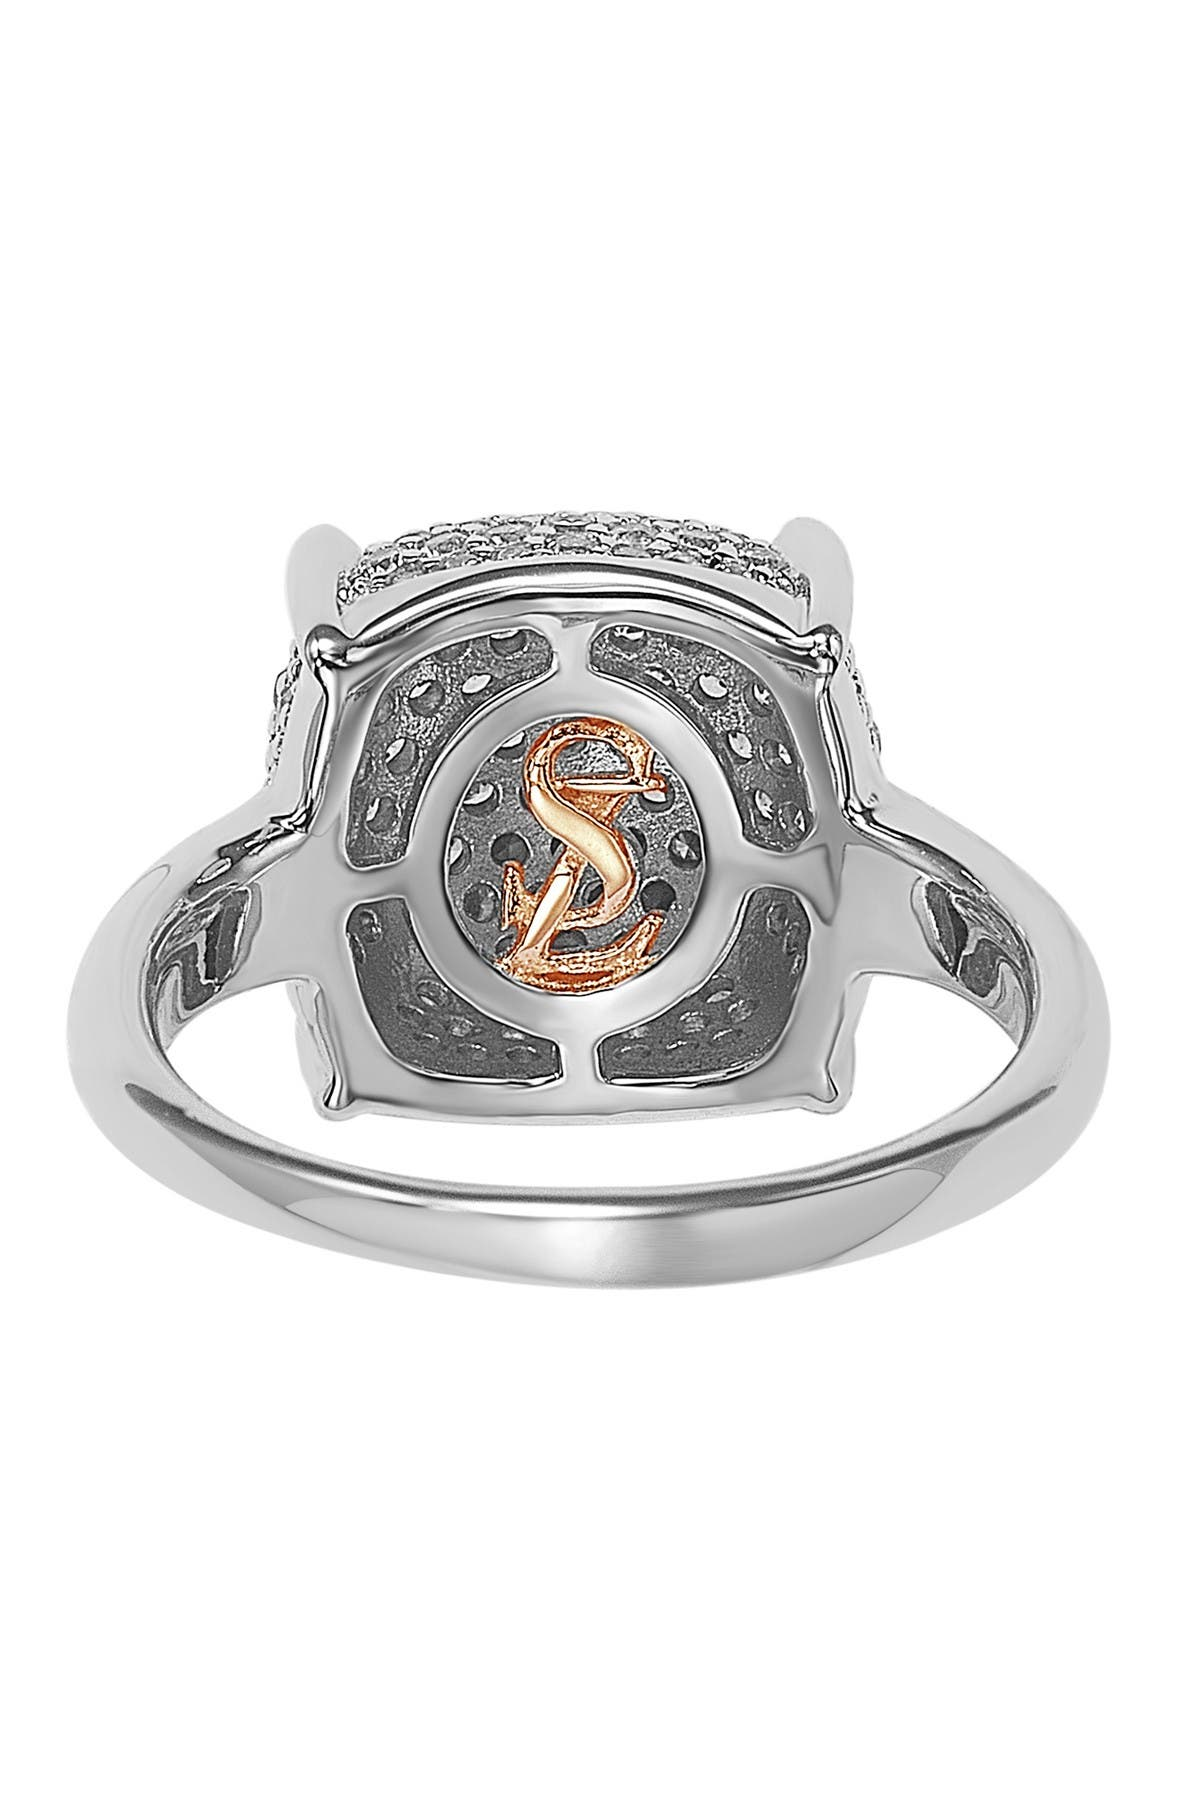 Sterling silver Champlev\u00e9  Cloisonne Space Invaders ring